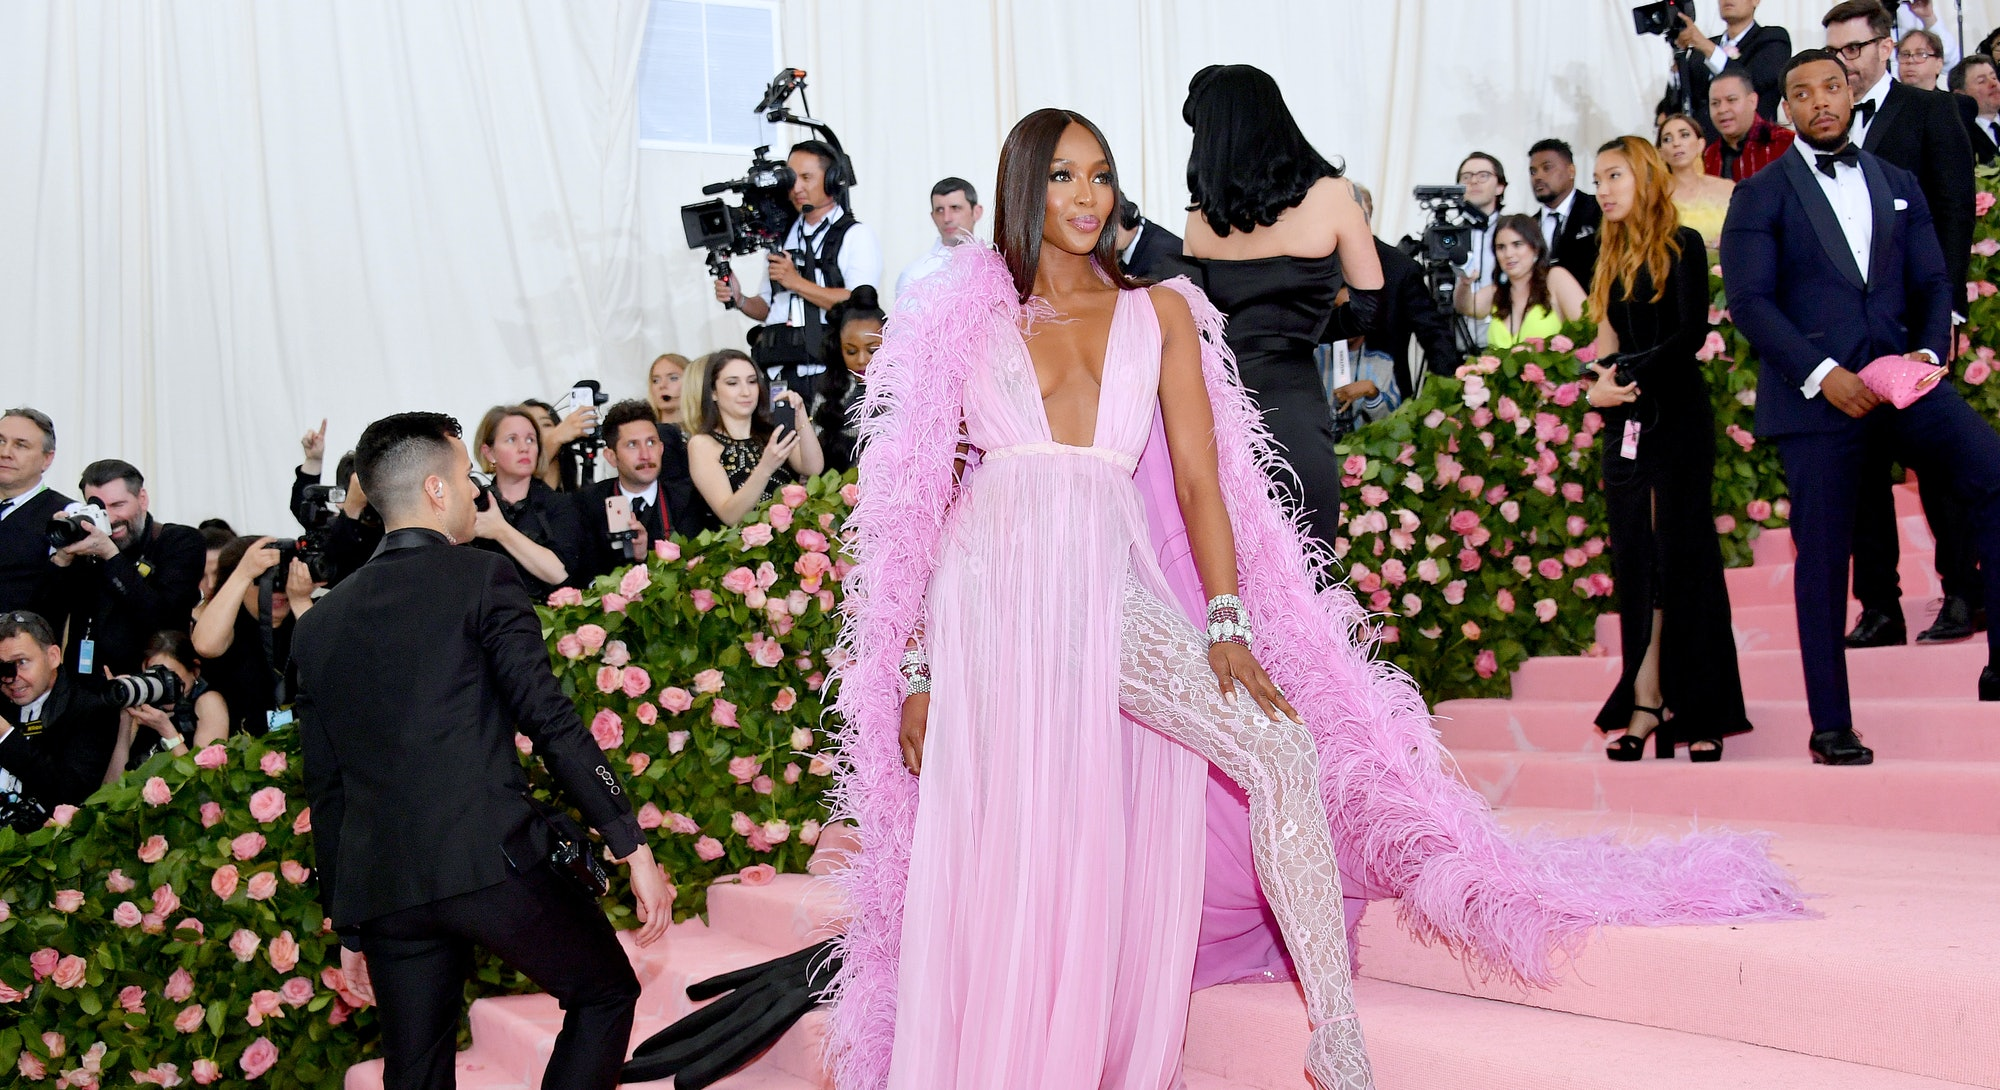 NEW YORK, NEW YORK - MAY 06: Naomi Campbell attends The 2019 Met Gala Celebrating Camp: Notes on Fas...